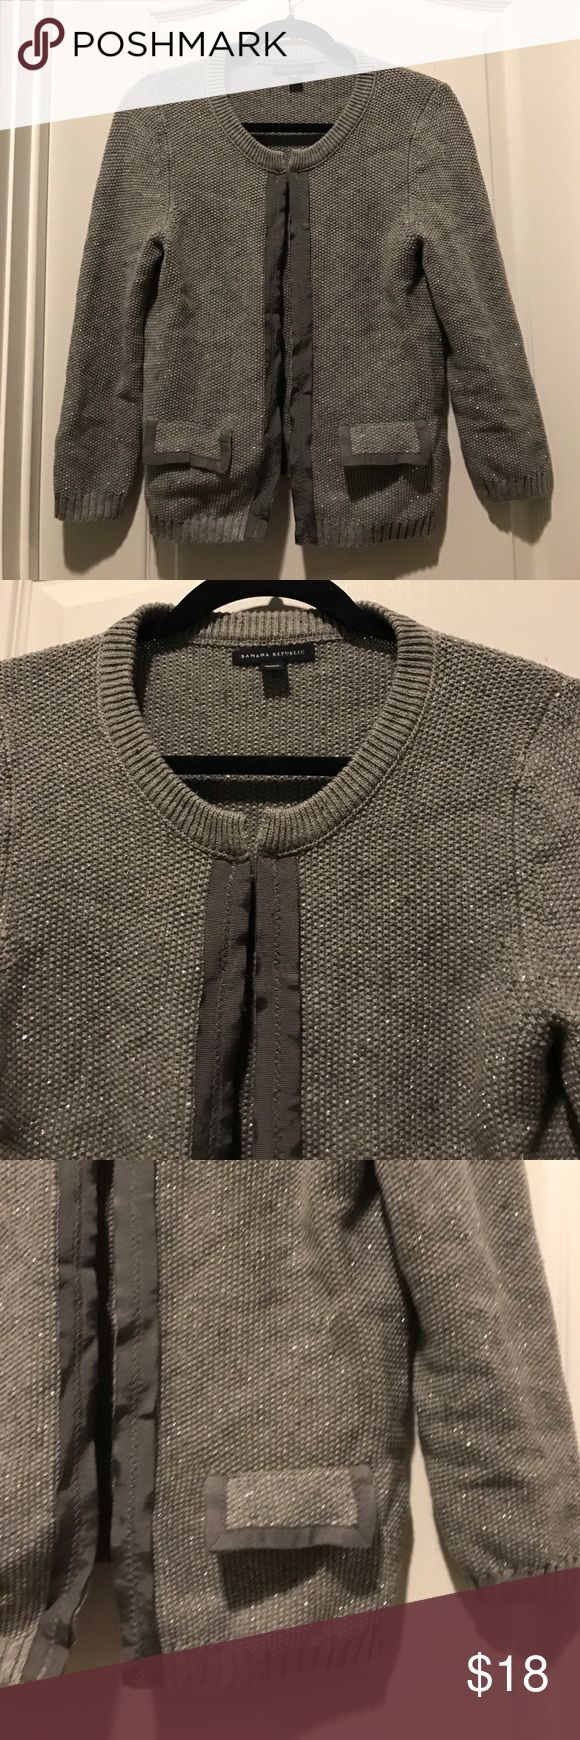 Banana Republic Short Silver Cardigan Like new! No damages, stains, or wearing. Has hooks all the way down the front. Silver thread woven into the cotton knit. Banana Republic Sweaters Cardigans